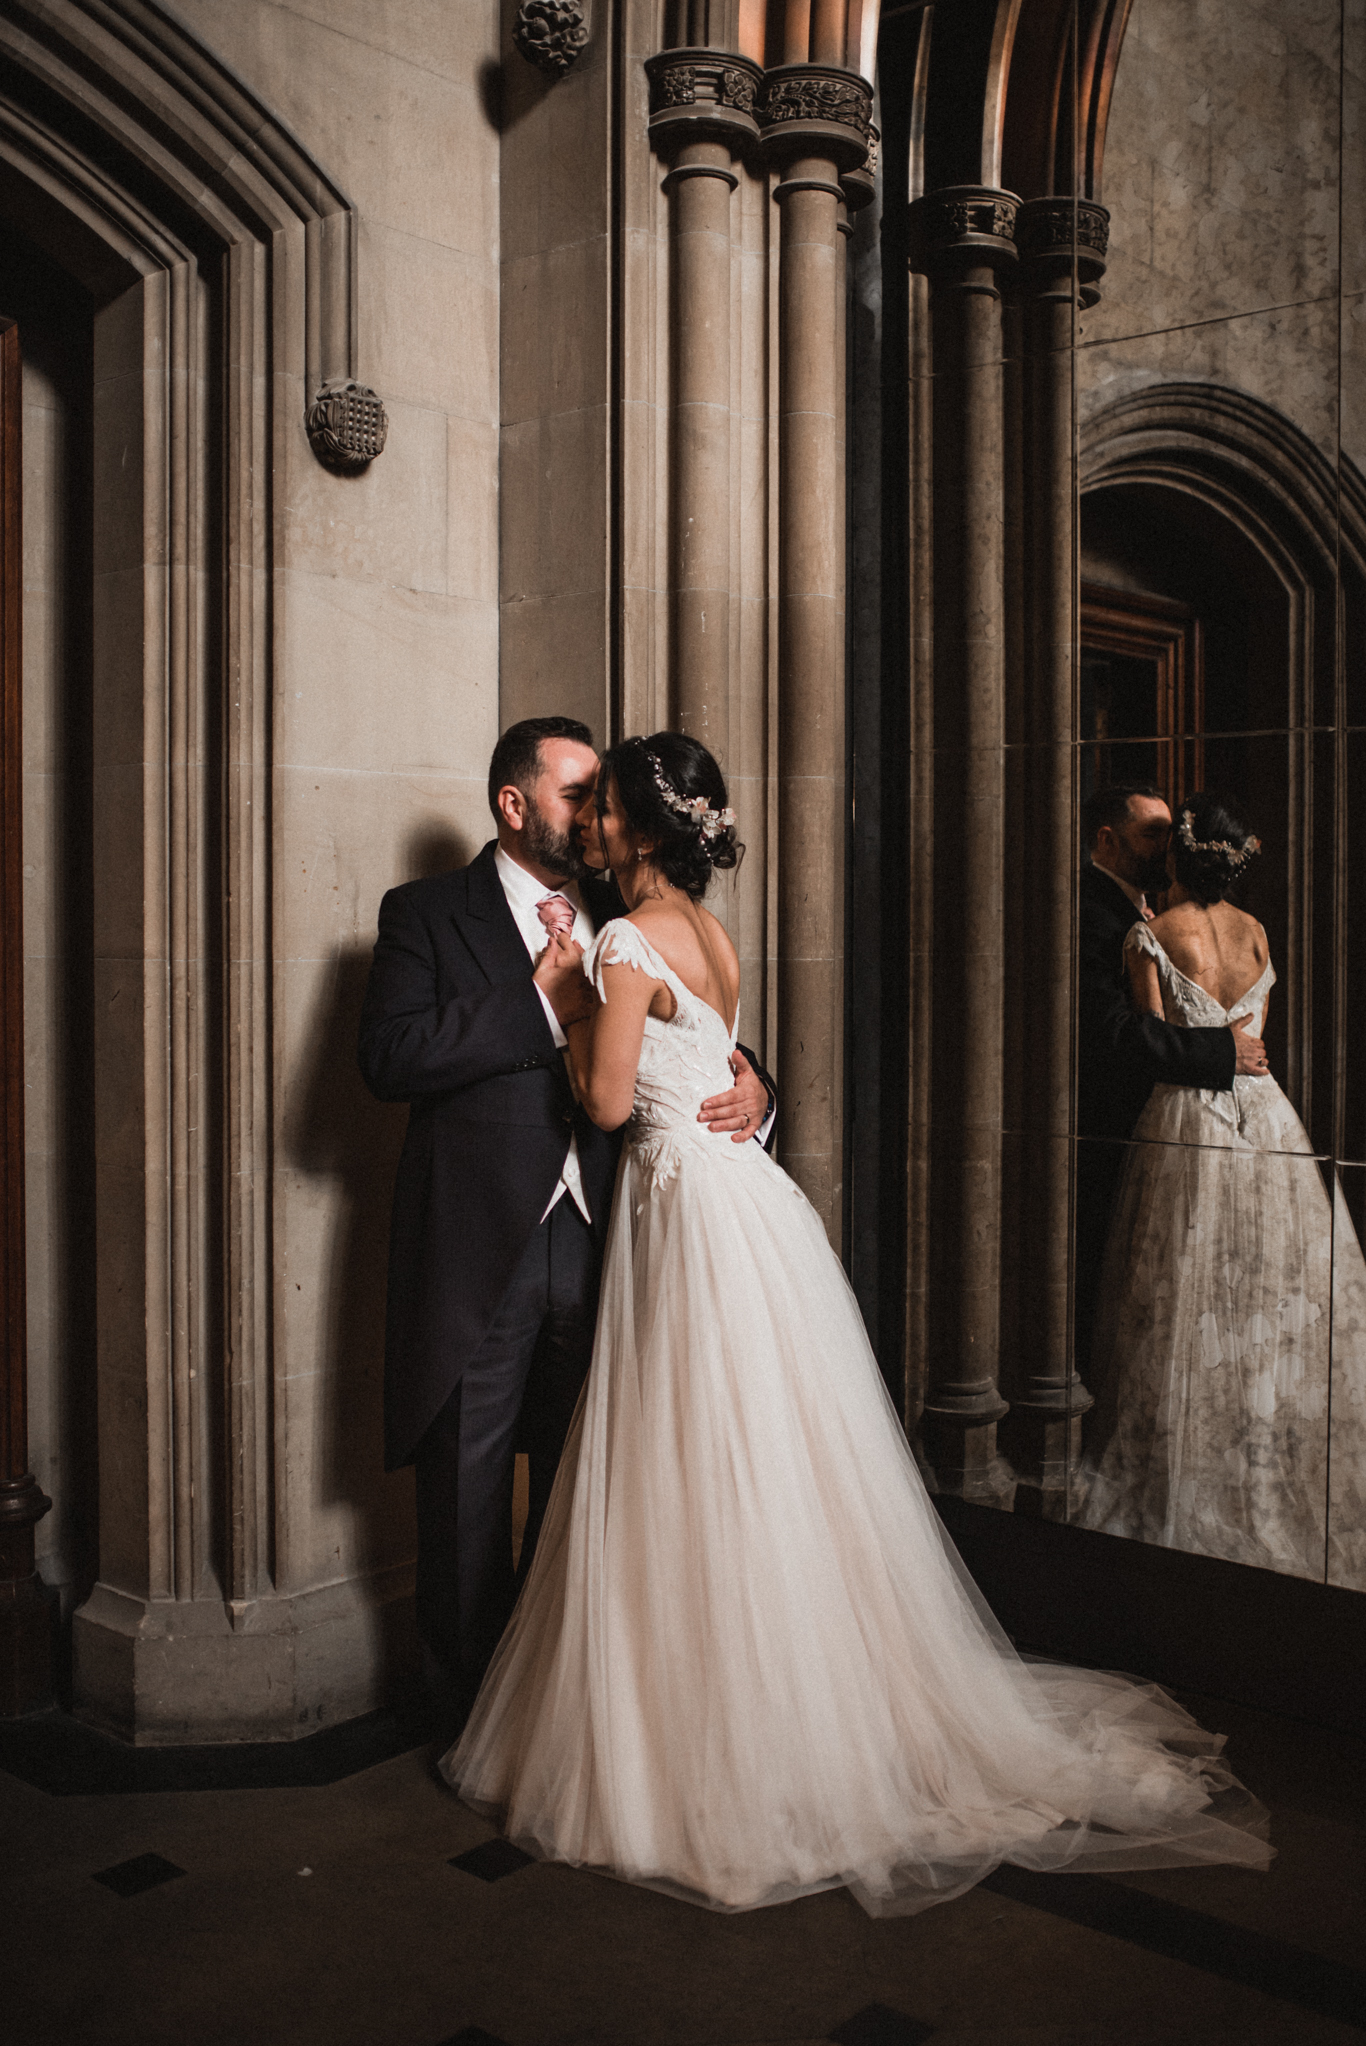 Wedding photographer north east